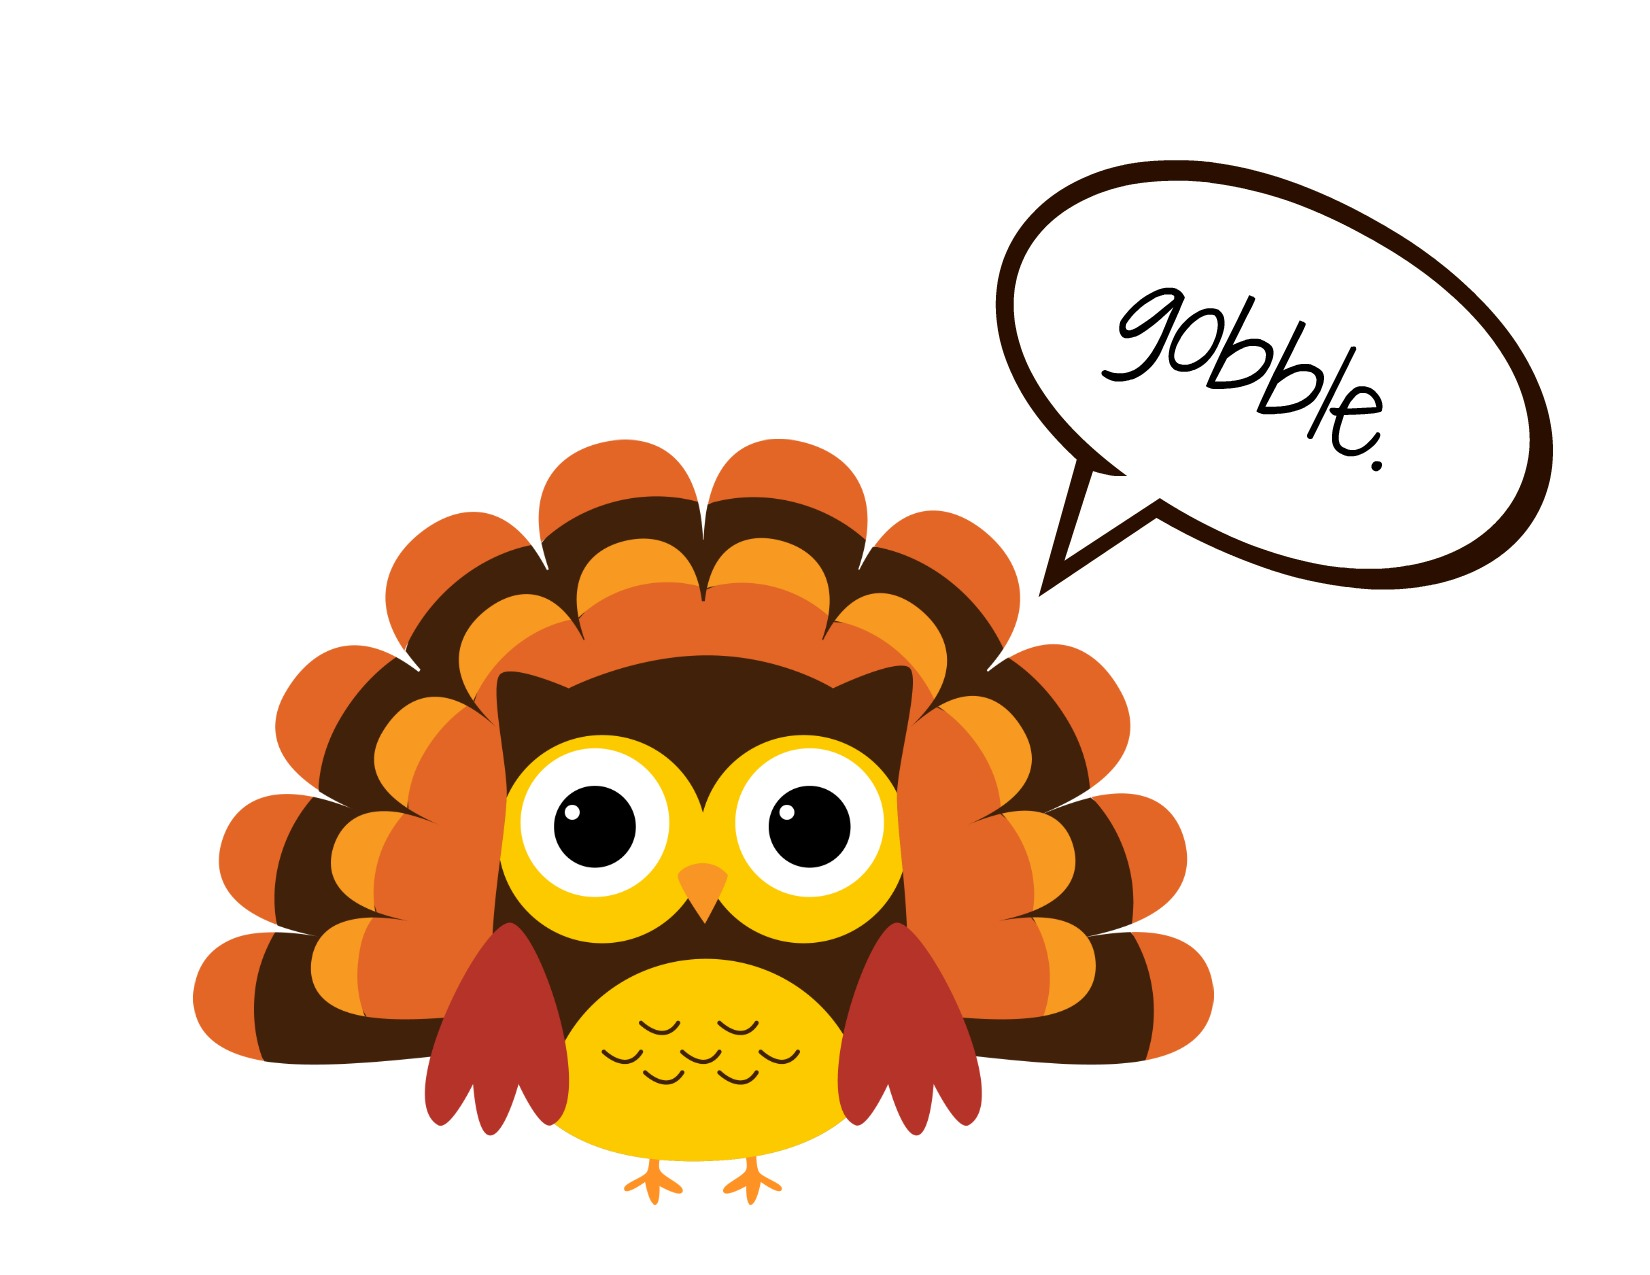 thanksgiving clipart for children at getdrawings com free for rh getdrawings com happy thanksgiving clip art religious happy thanksgiving clip art funny